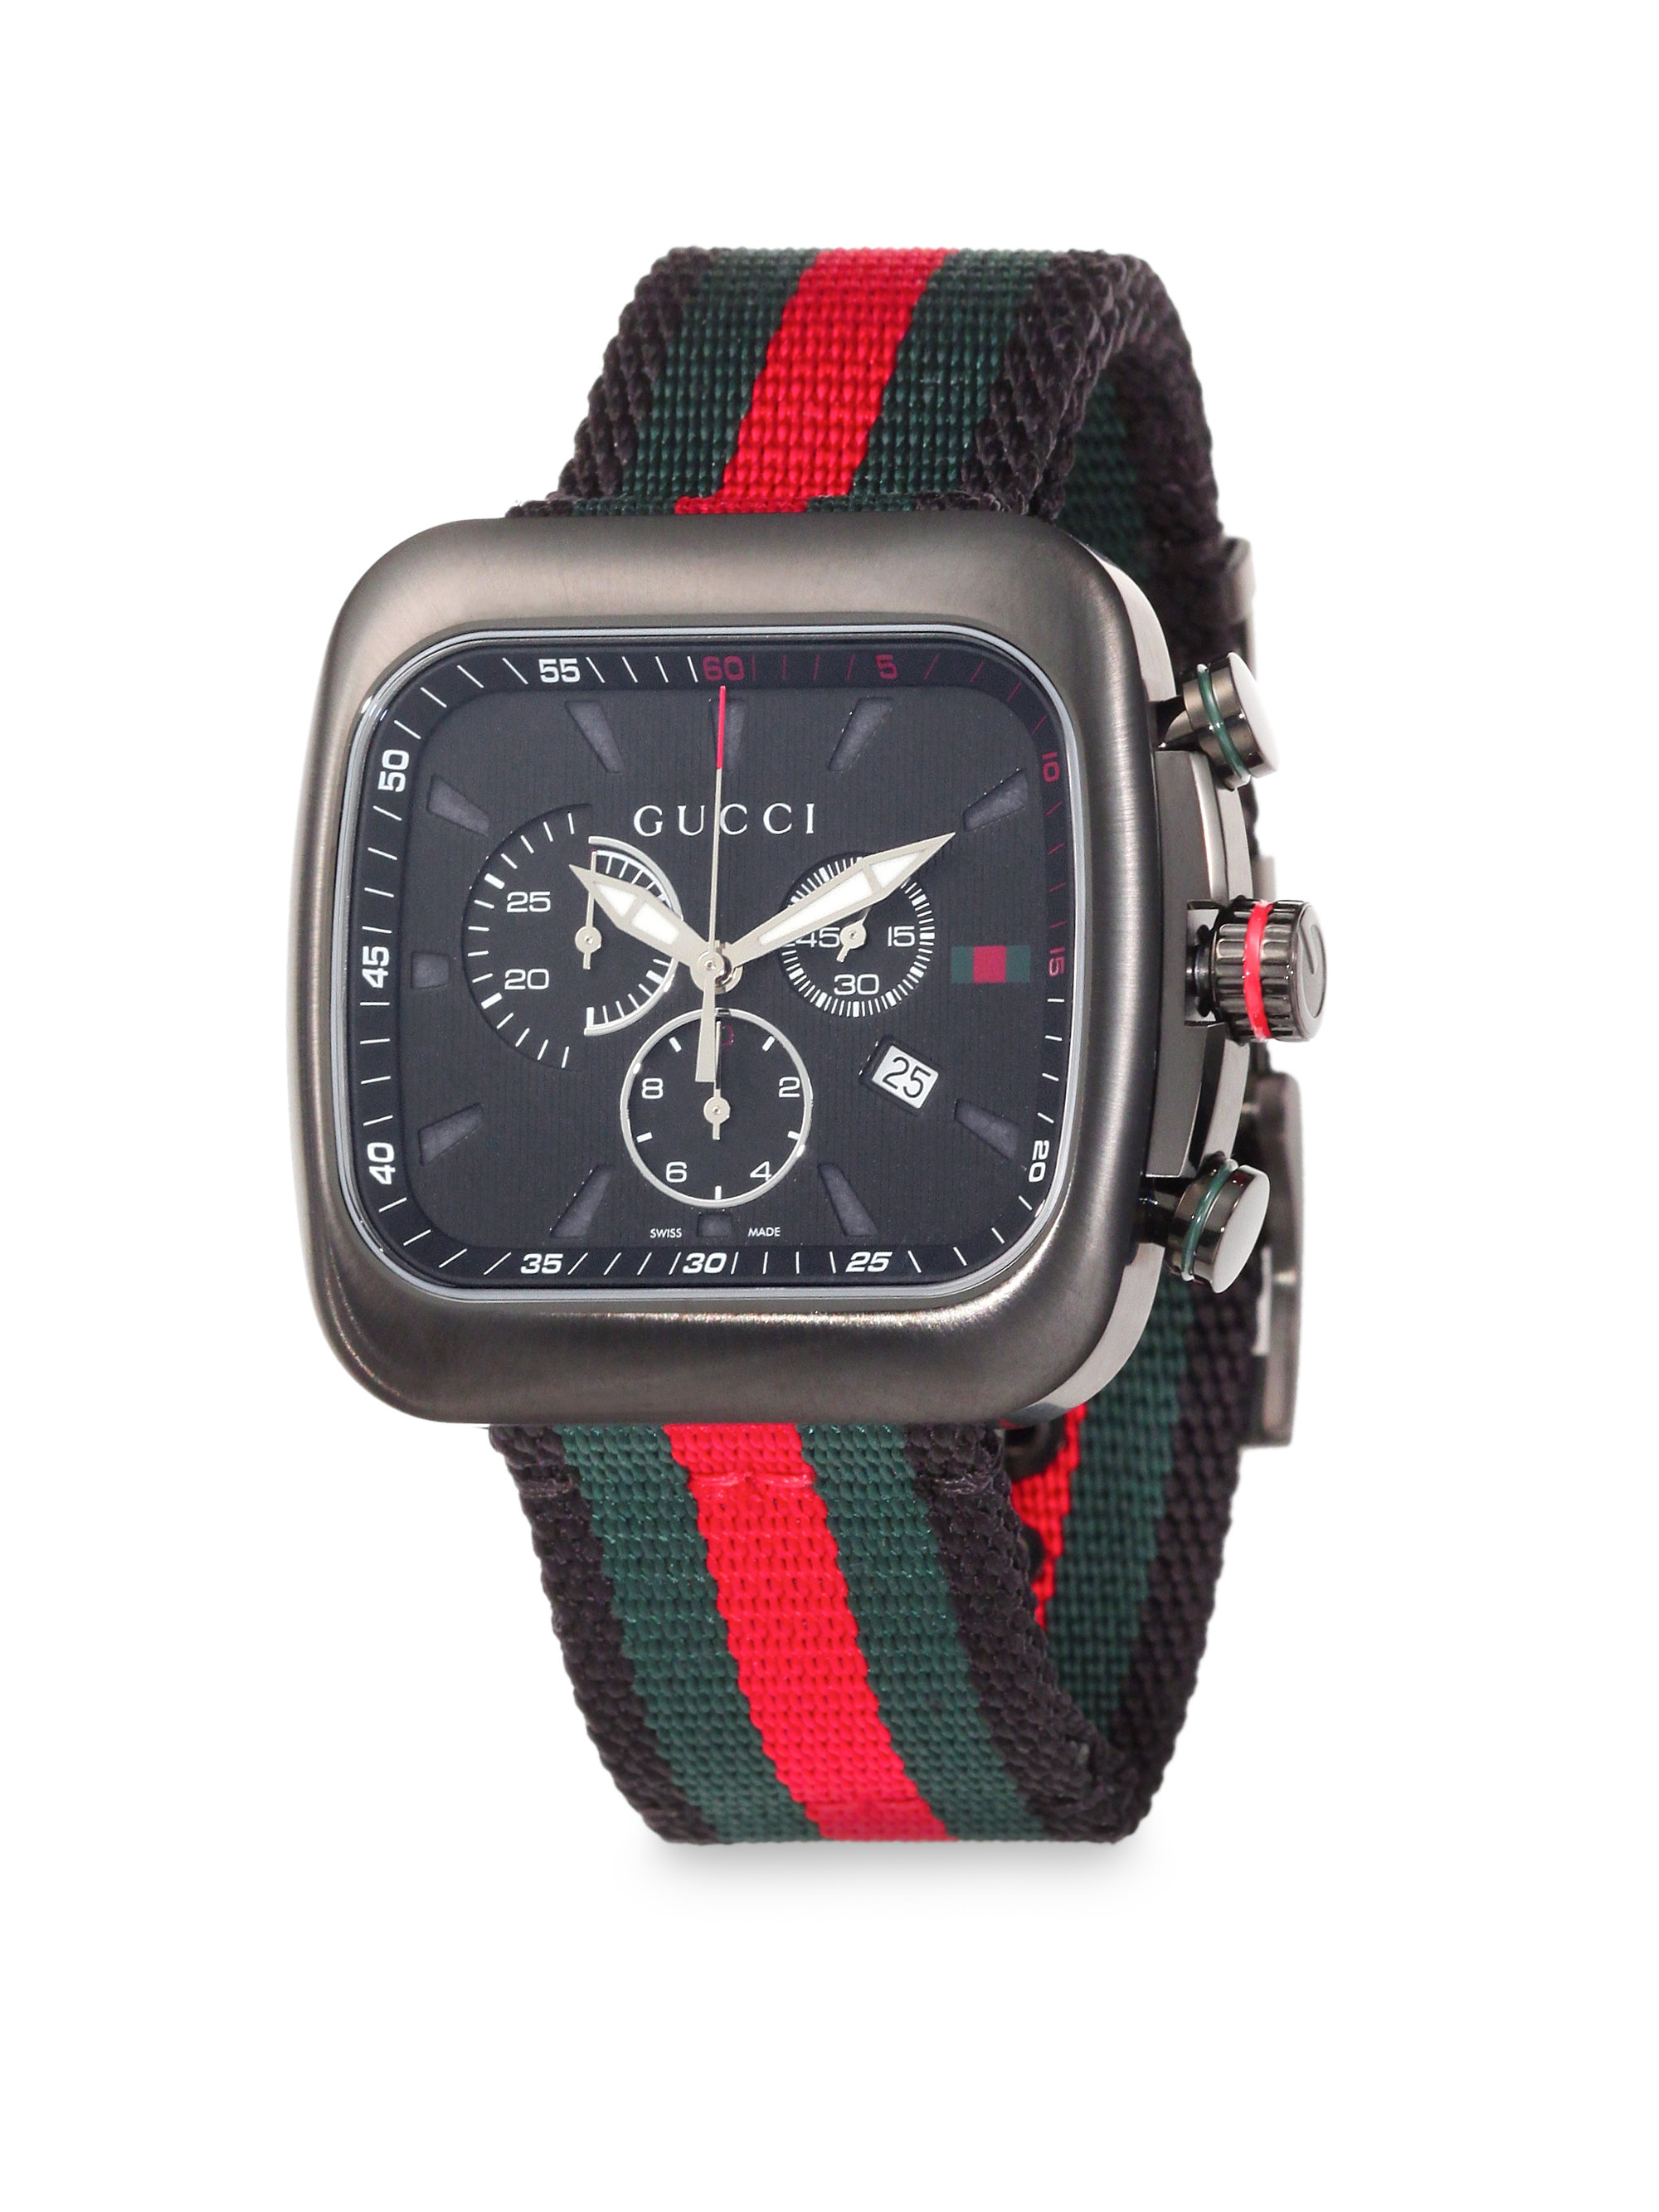 6ecd7c84426 Lyst - Gucci Coupé Chronograph Watch in Red for Men